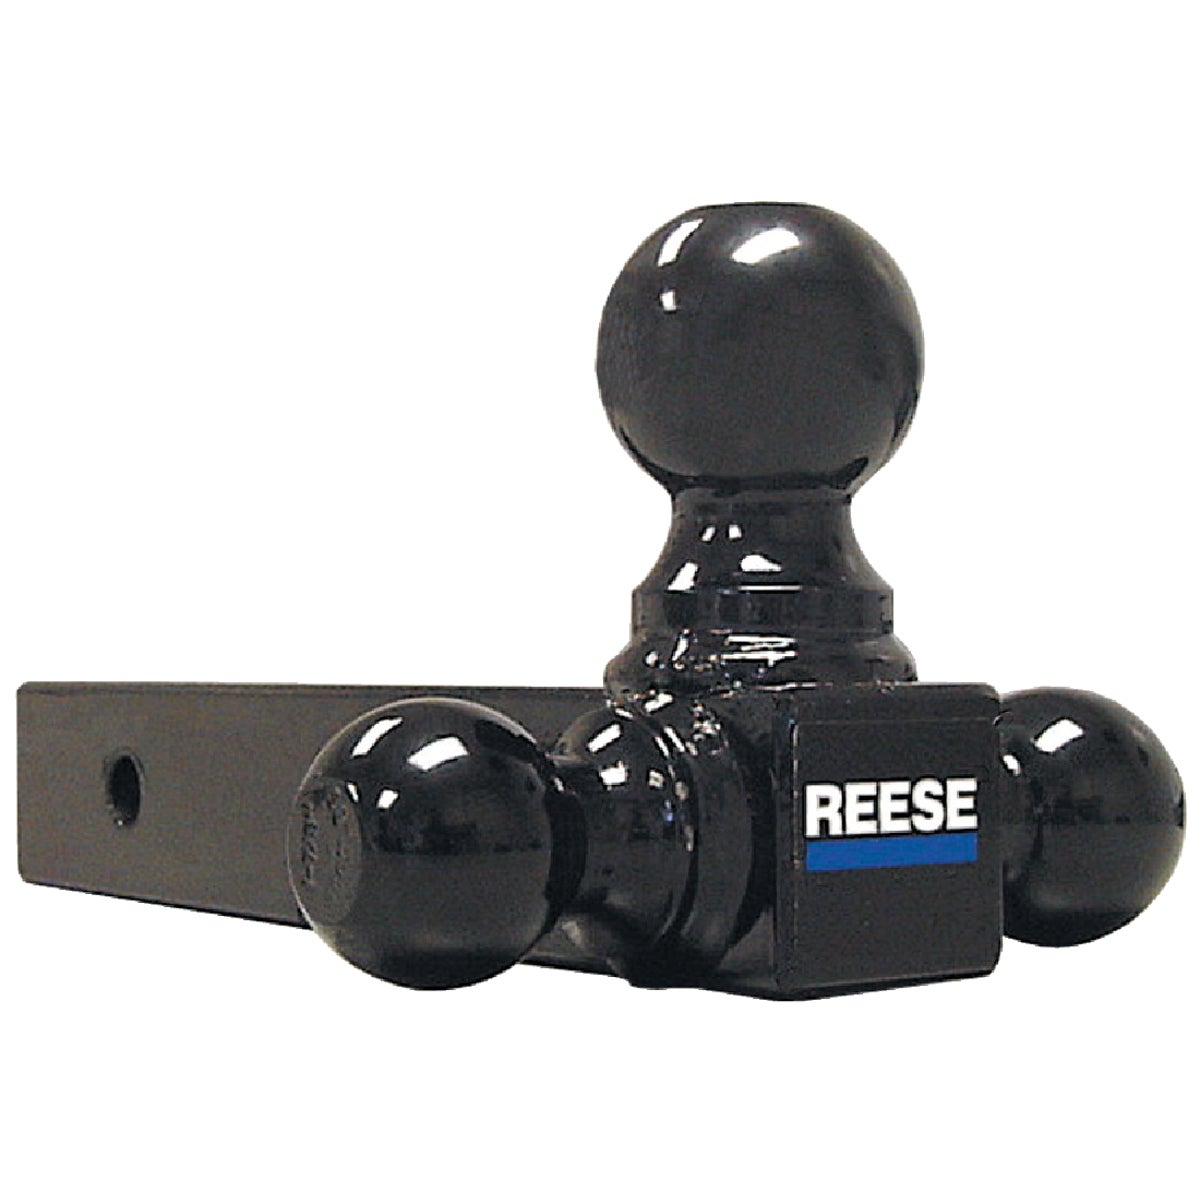 BAR/TRI SIZE HITCH BALL